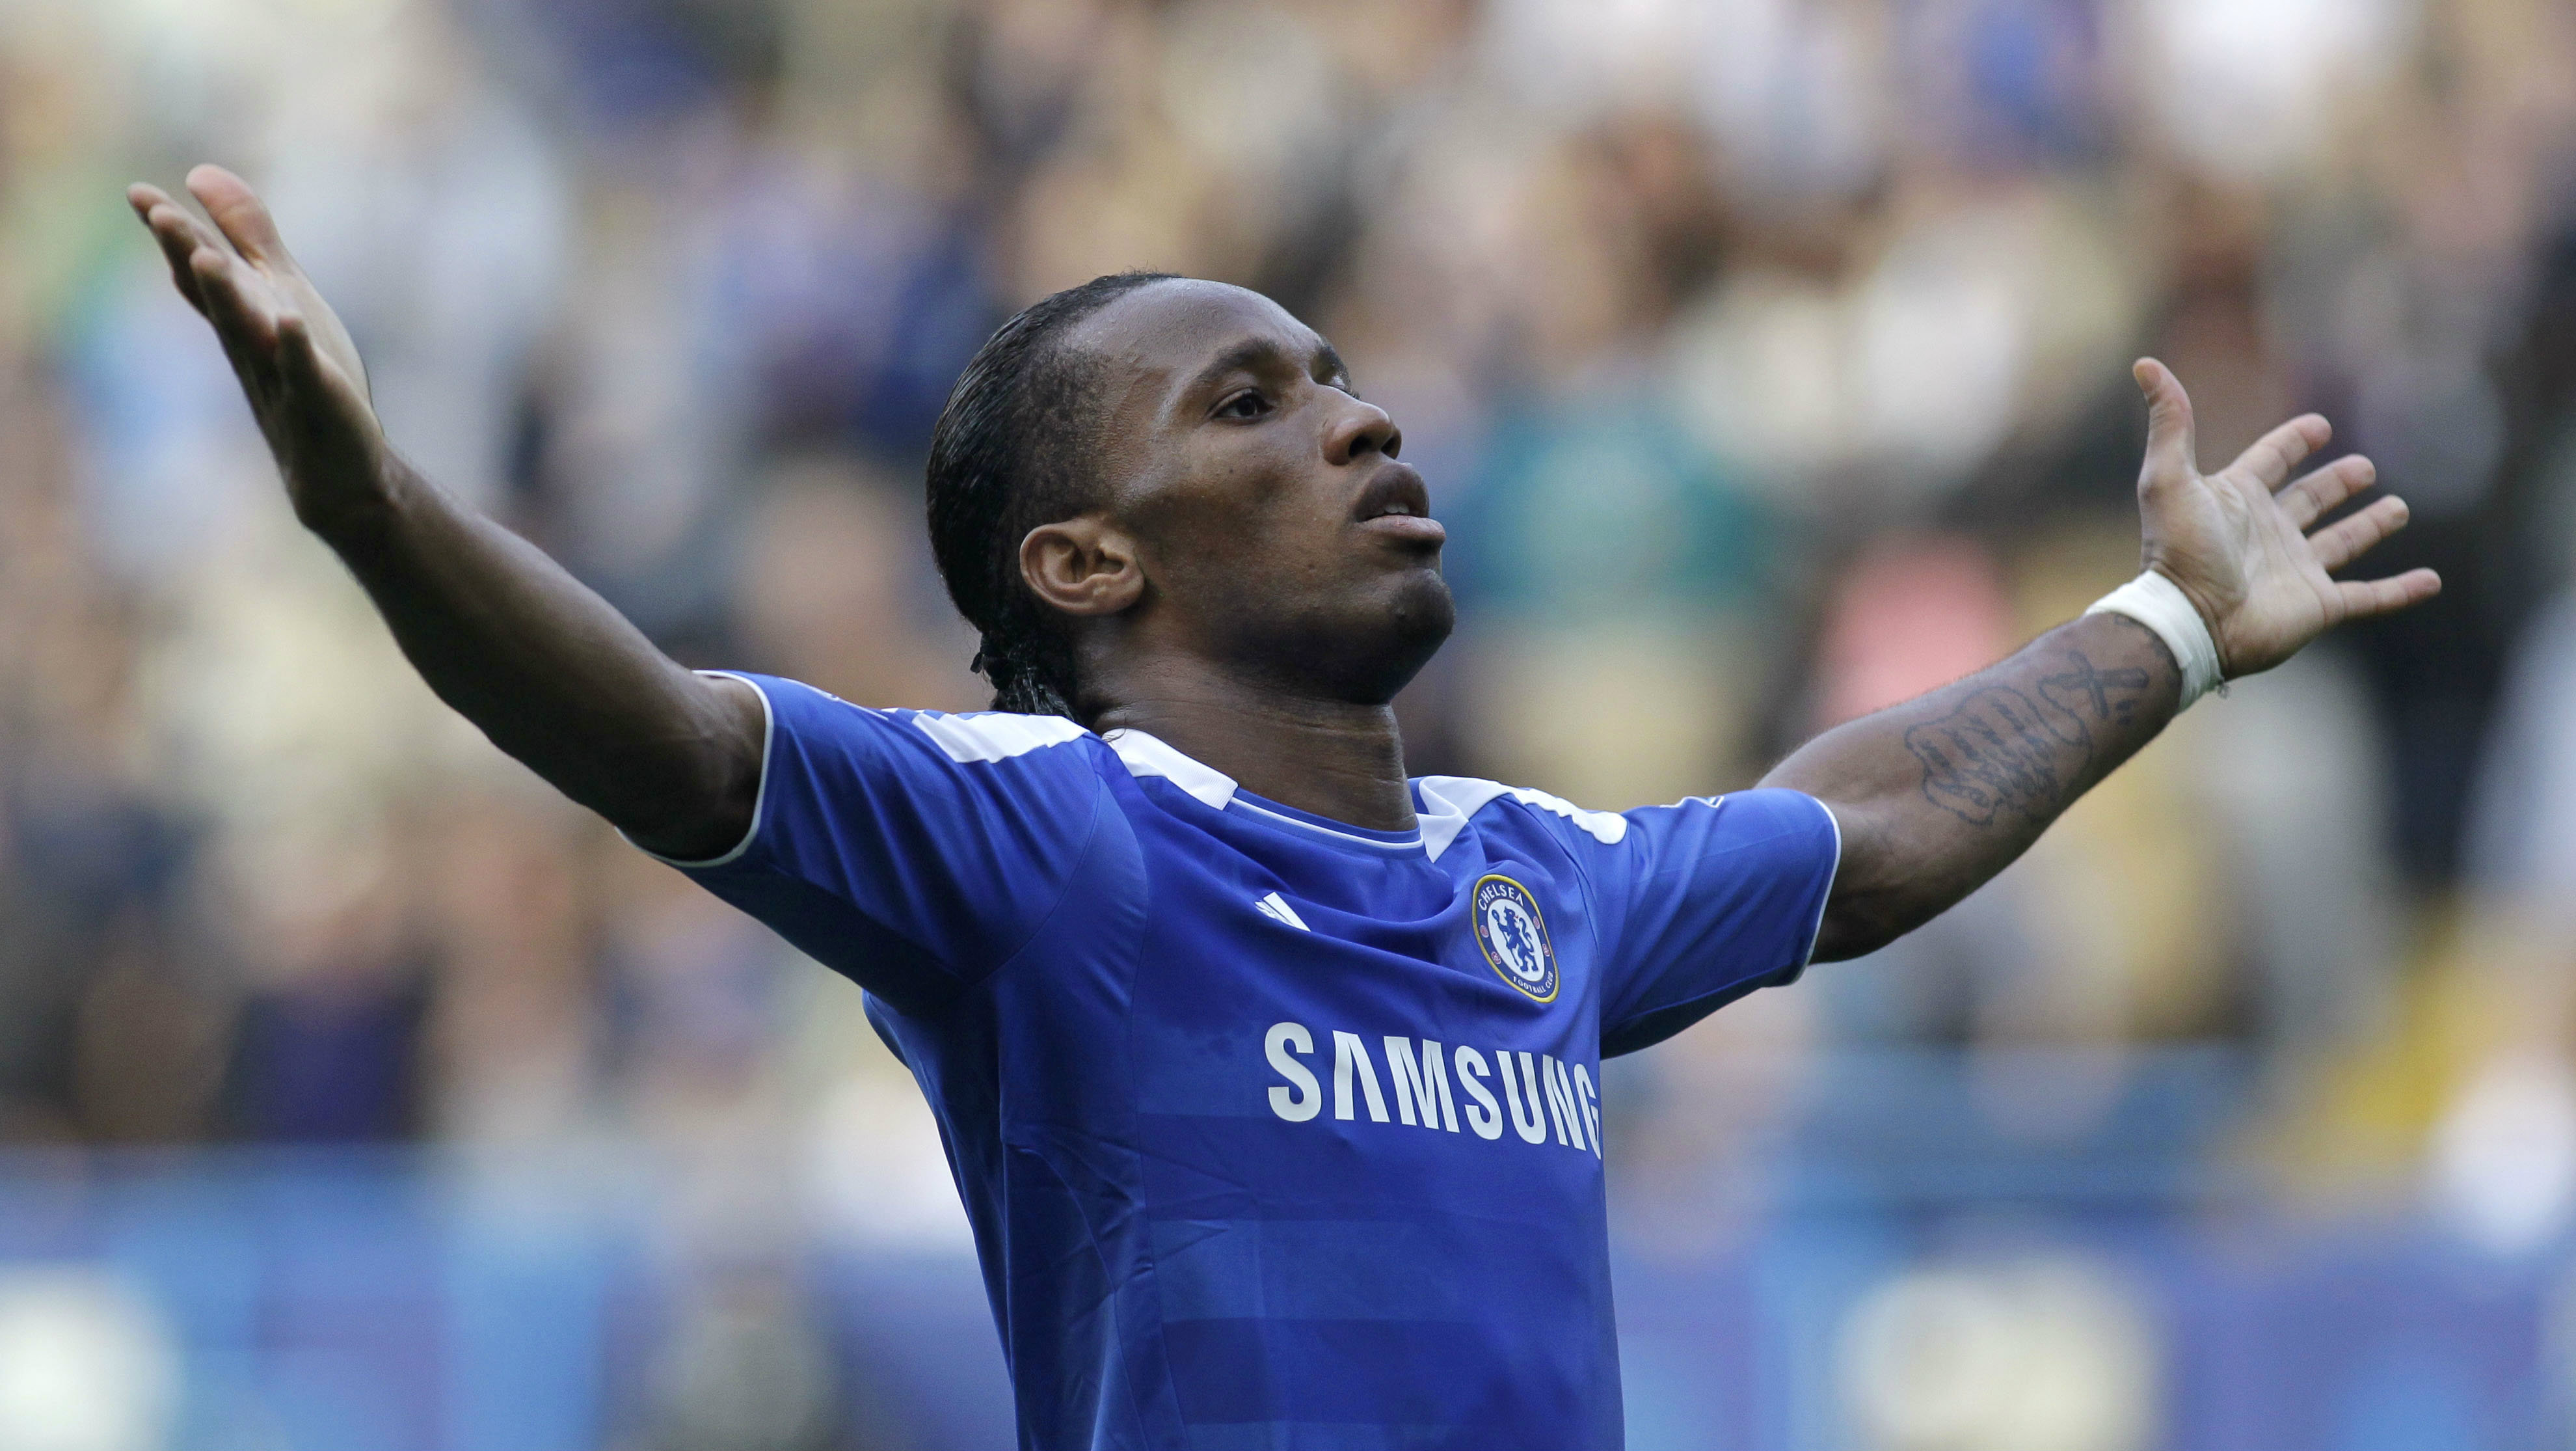 Chelsea's Didier Drogba celebrates his goal against Stoke City during their English Premier League soccer match at Stamford Bridge, London, Saturday, March 10, 2012.